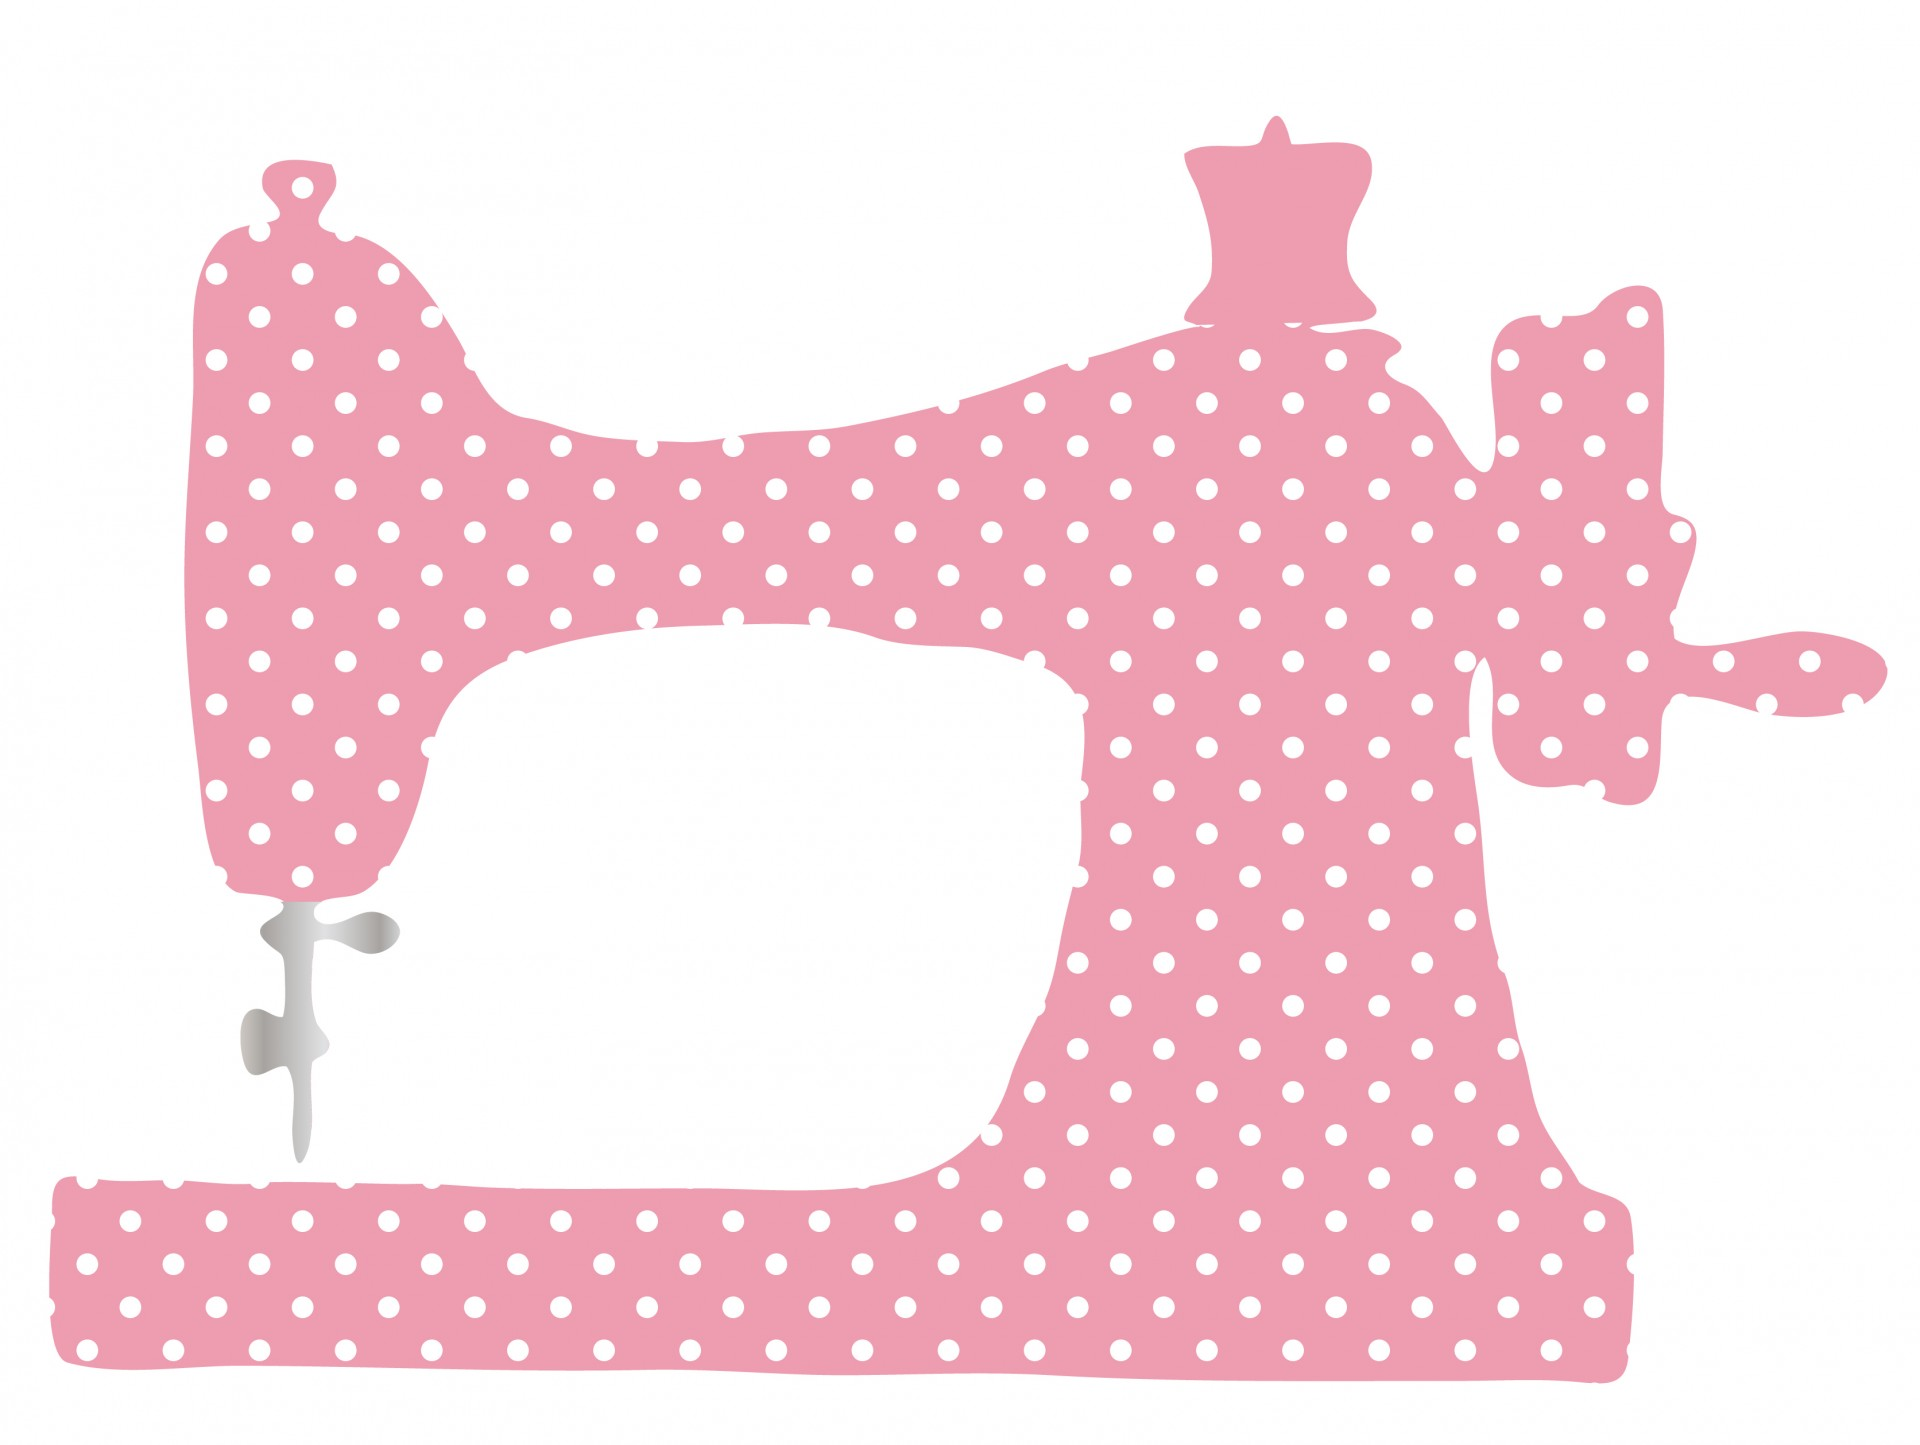 1920x1445 Vintage Sewing Machine Clipart Free Stock Photo